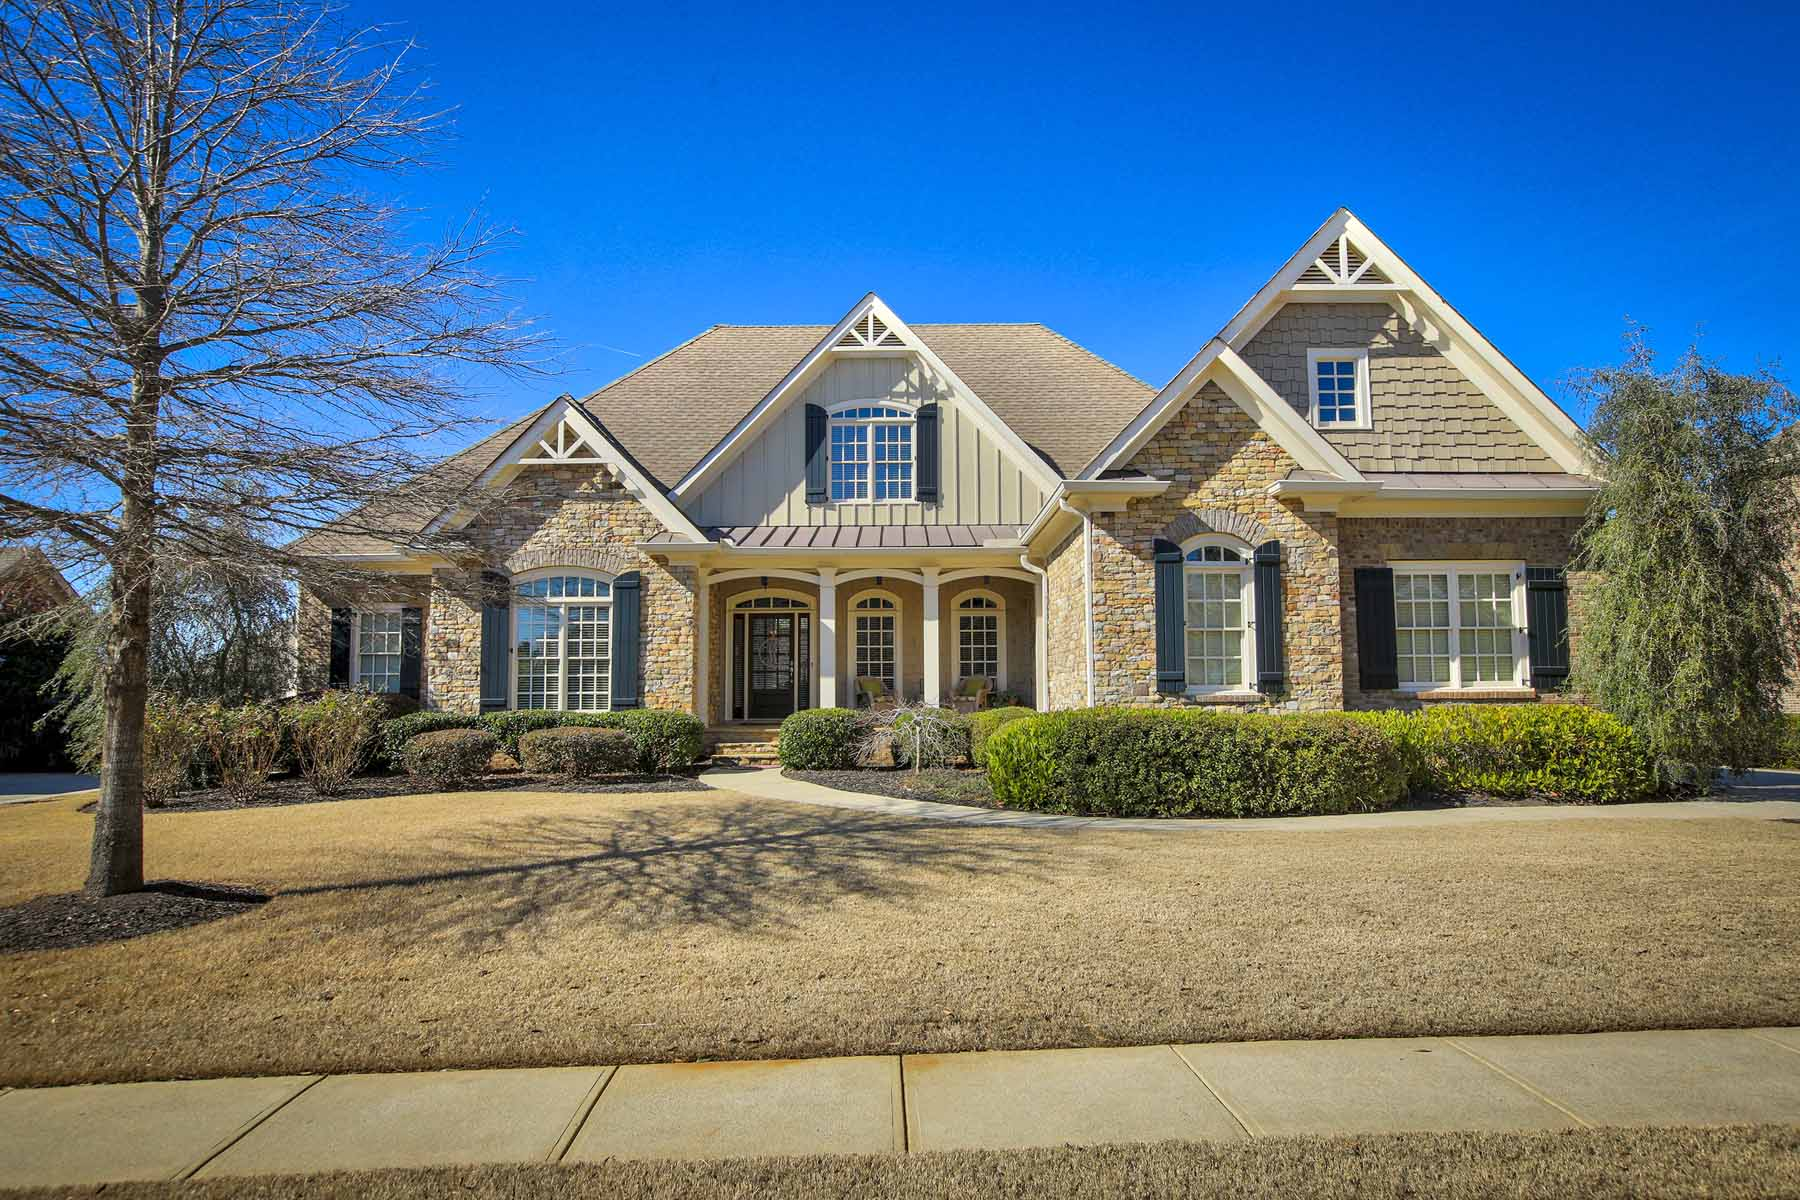 Single Family Home for Sale at Spectacular Dream Kitchen 3830 Preserve Crossing Lane Cumming, Georgia, 30040 United States